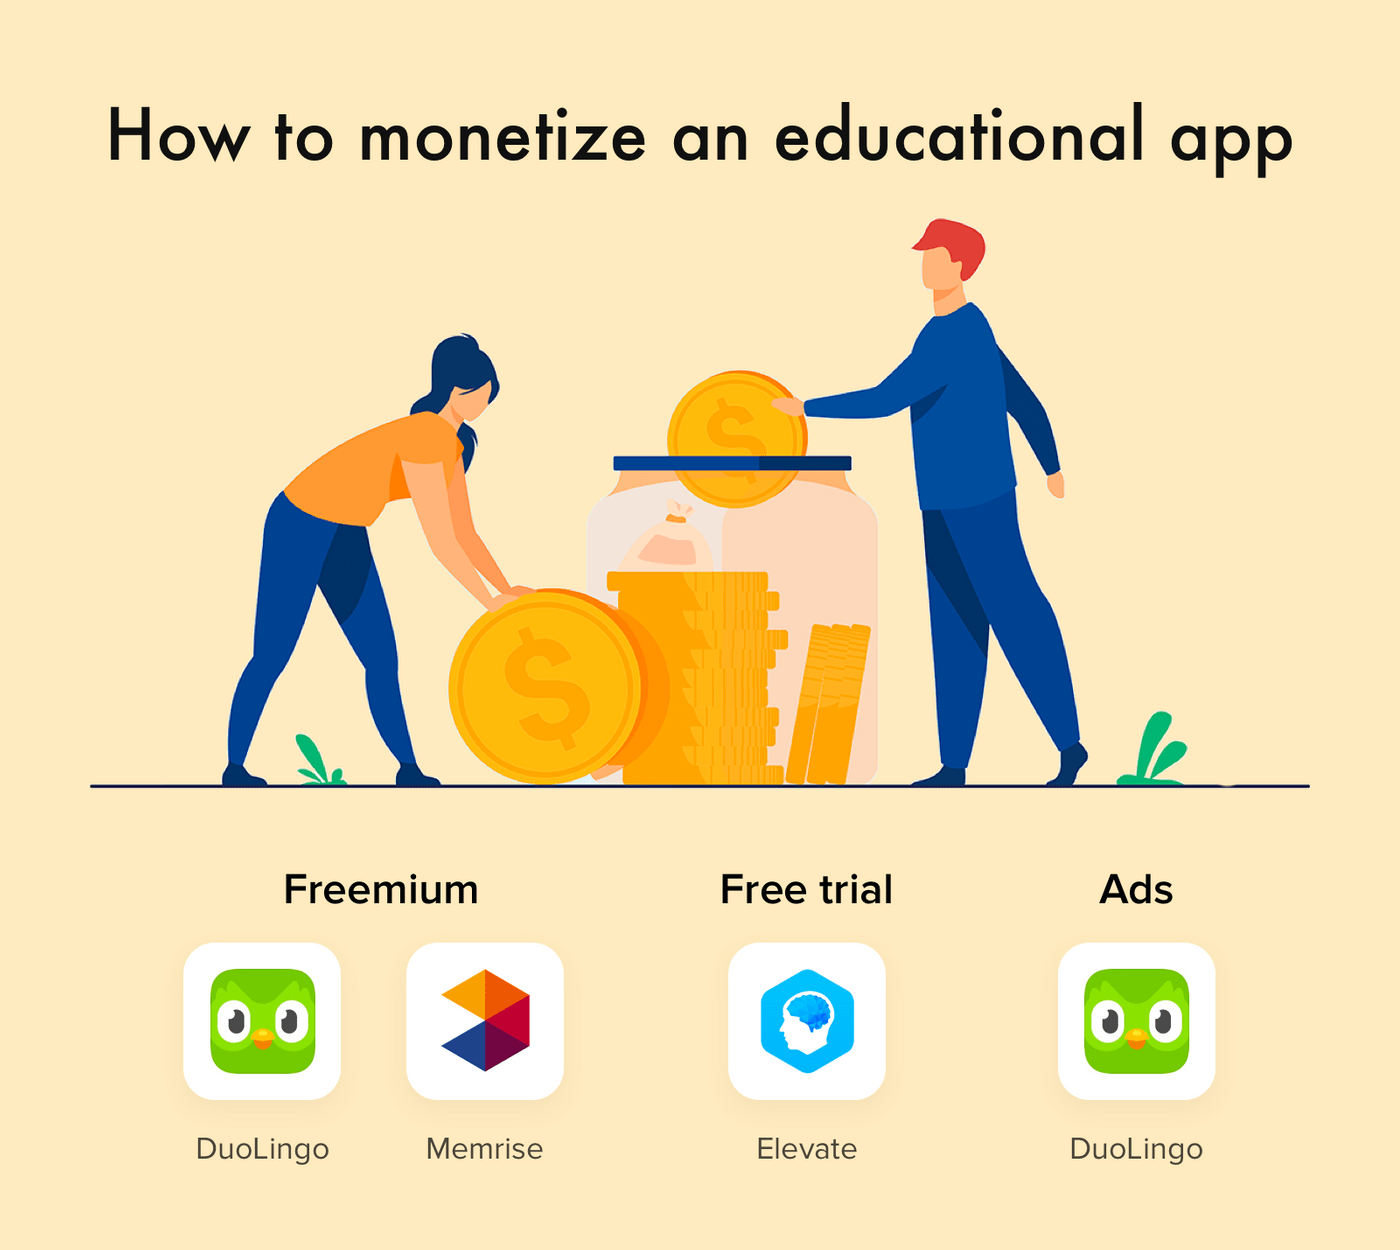 How to monetize an education app